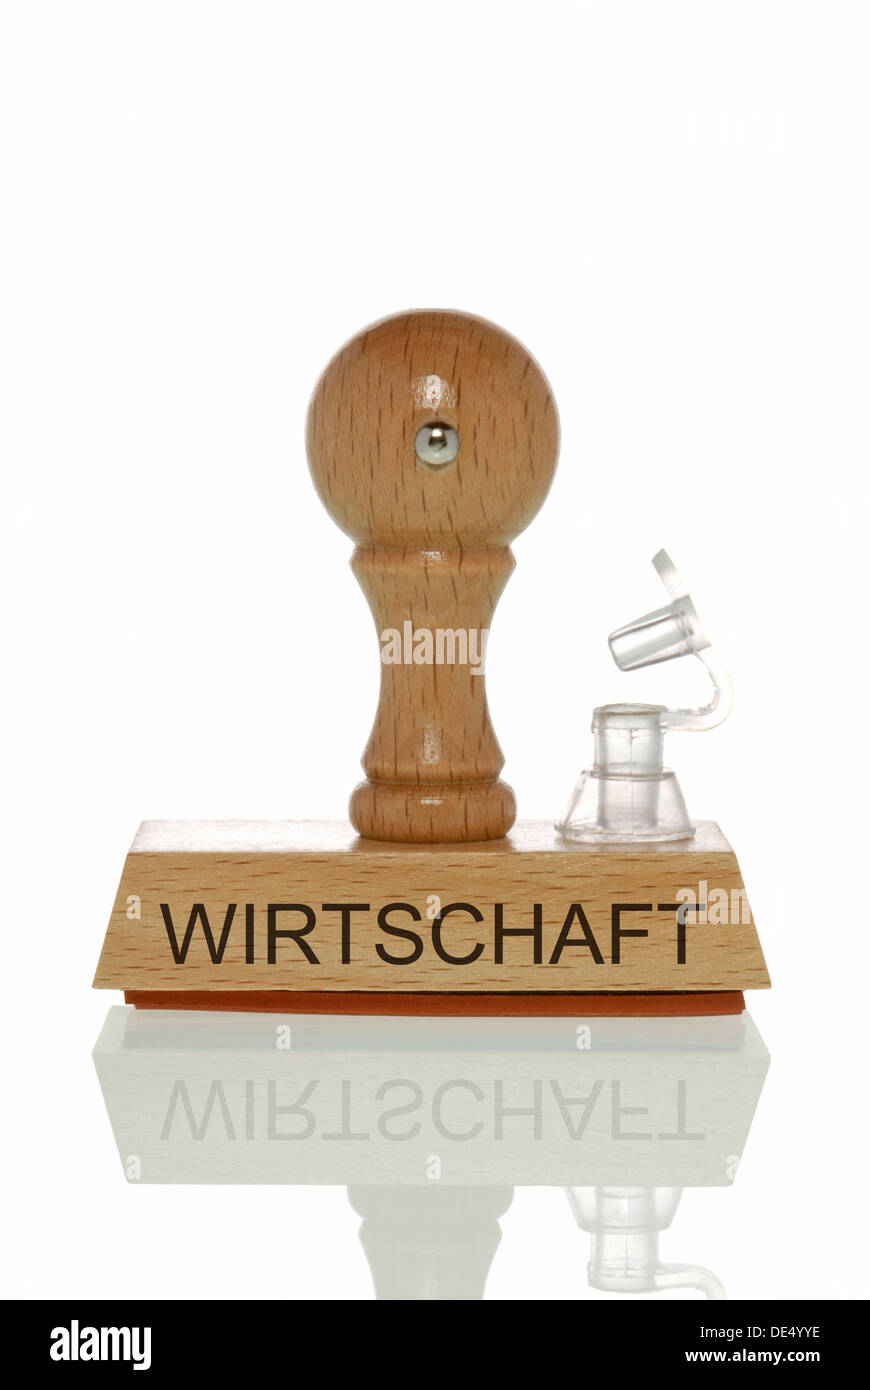 Stamp with the word 'Wirtschaft', economy with an open valve, symbolic image for the economy running out of air - Stock Image